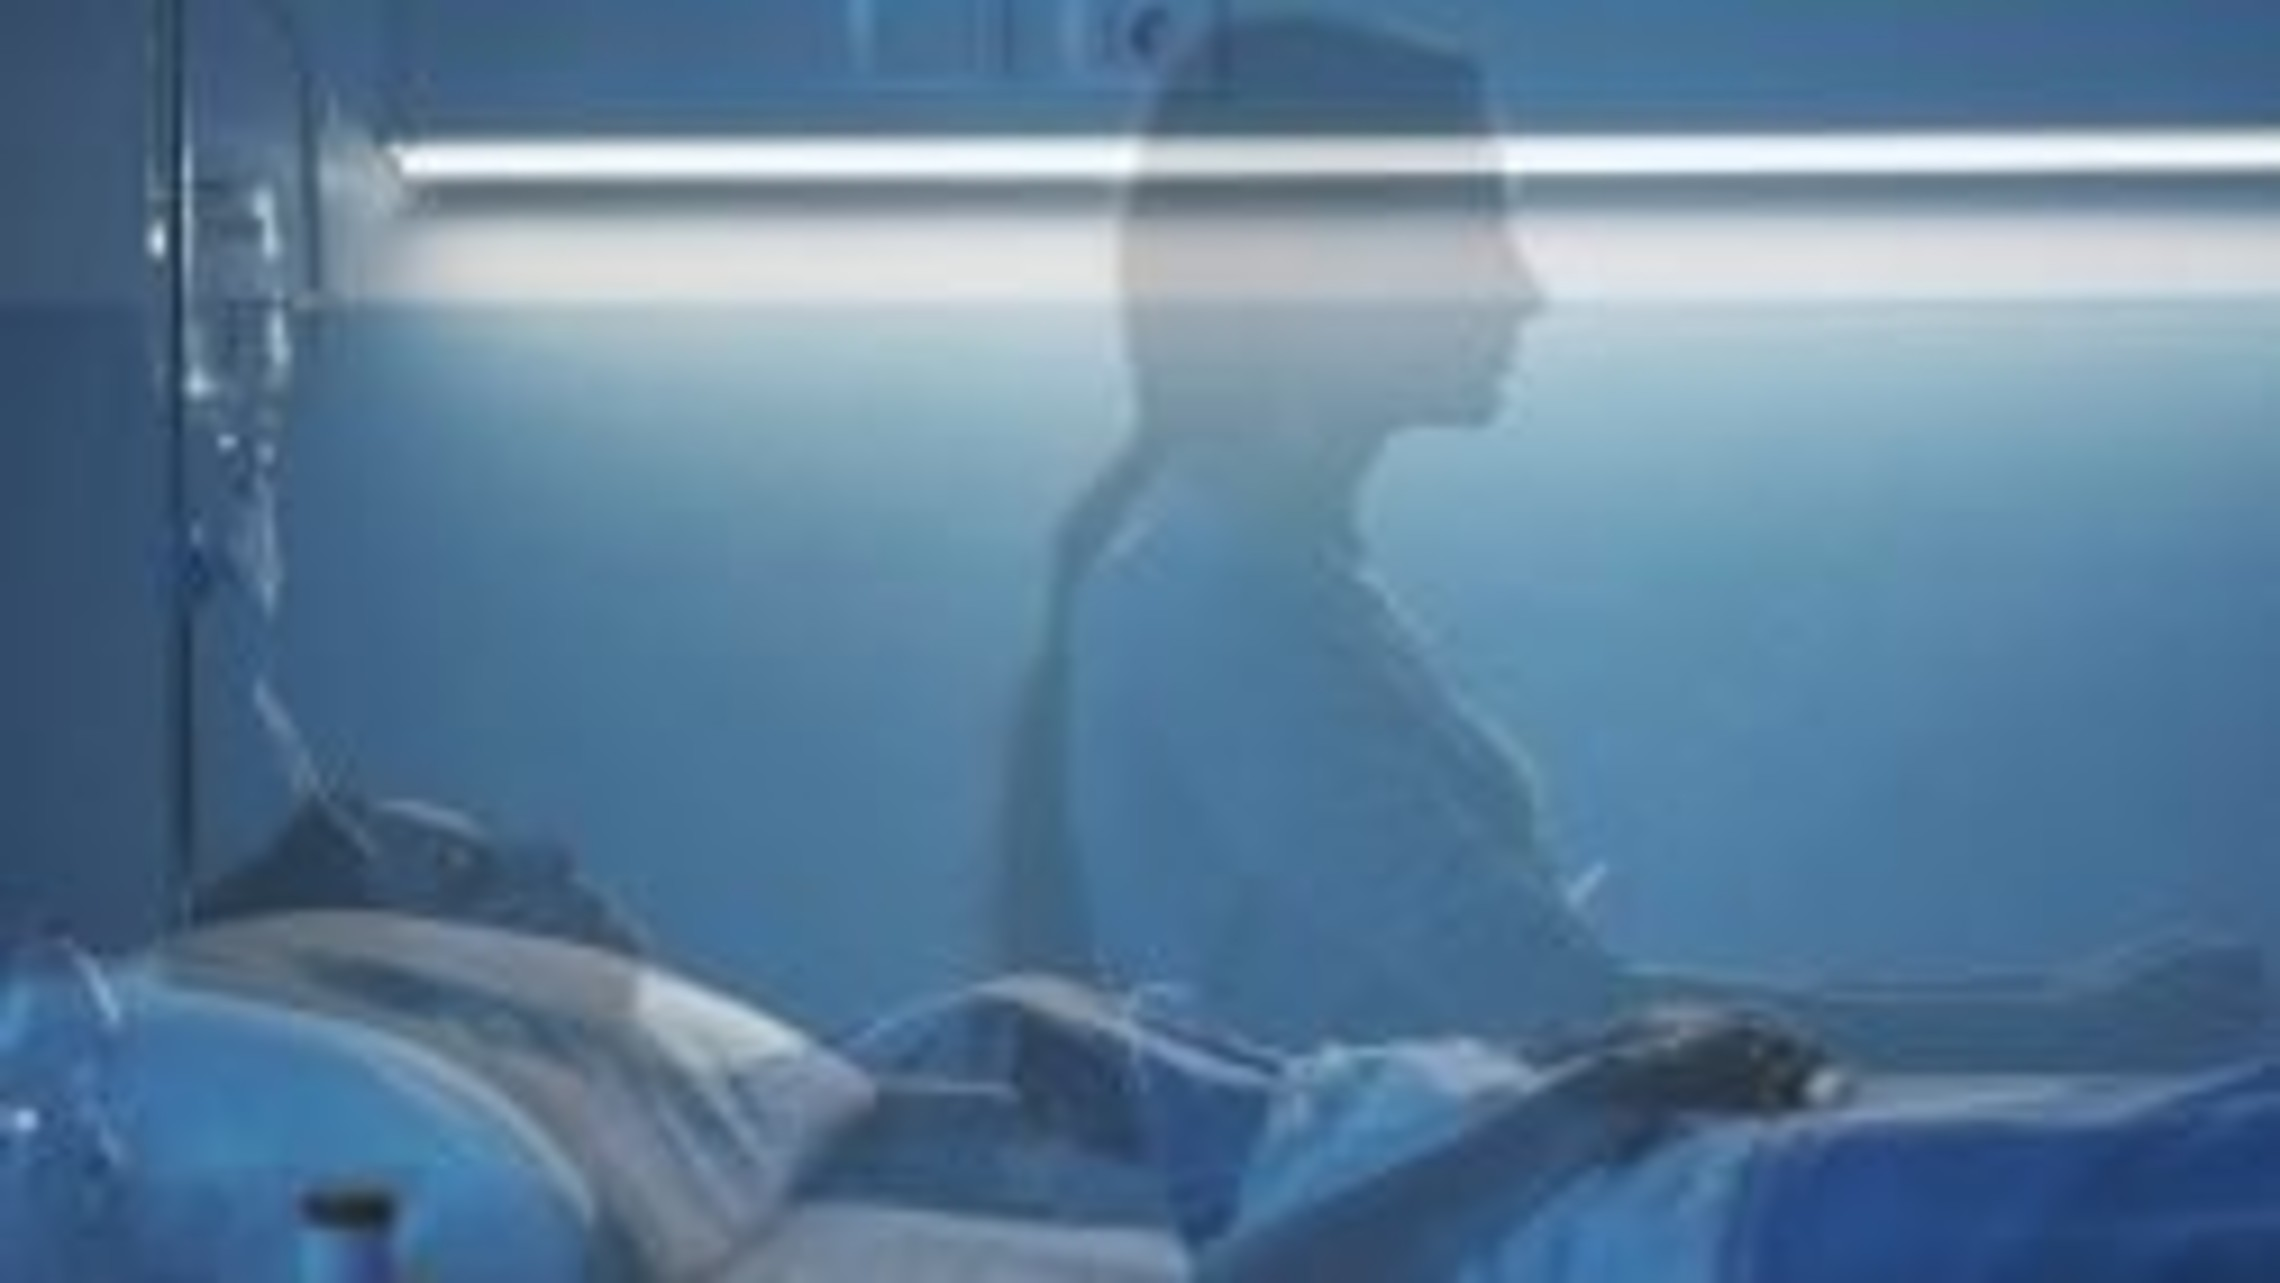 'I Died:' Women Share What Their Near-Death Experiences Were Like